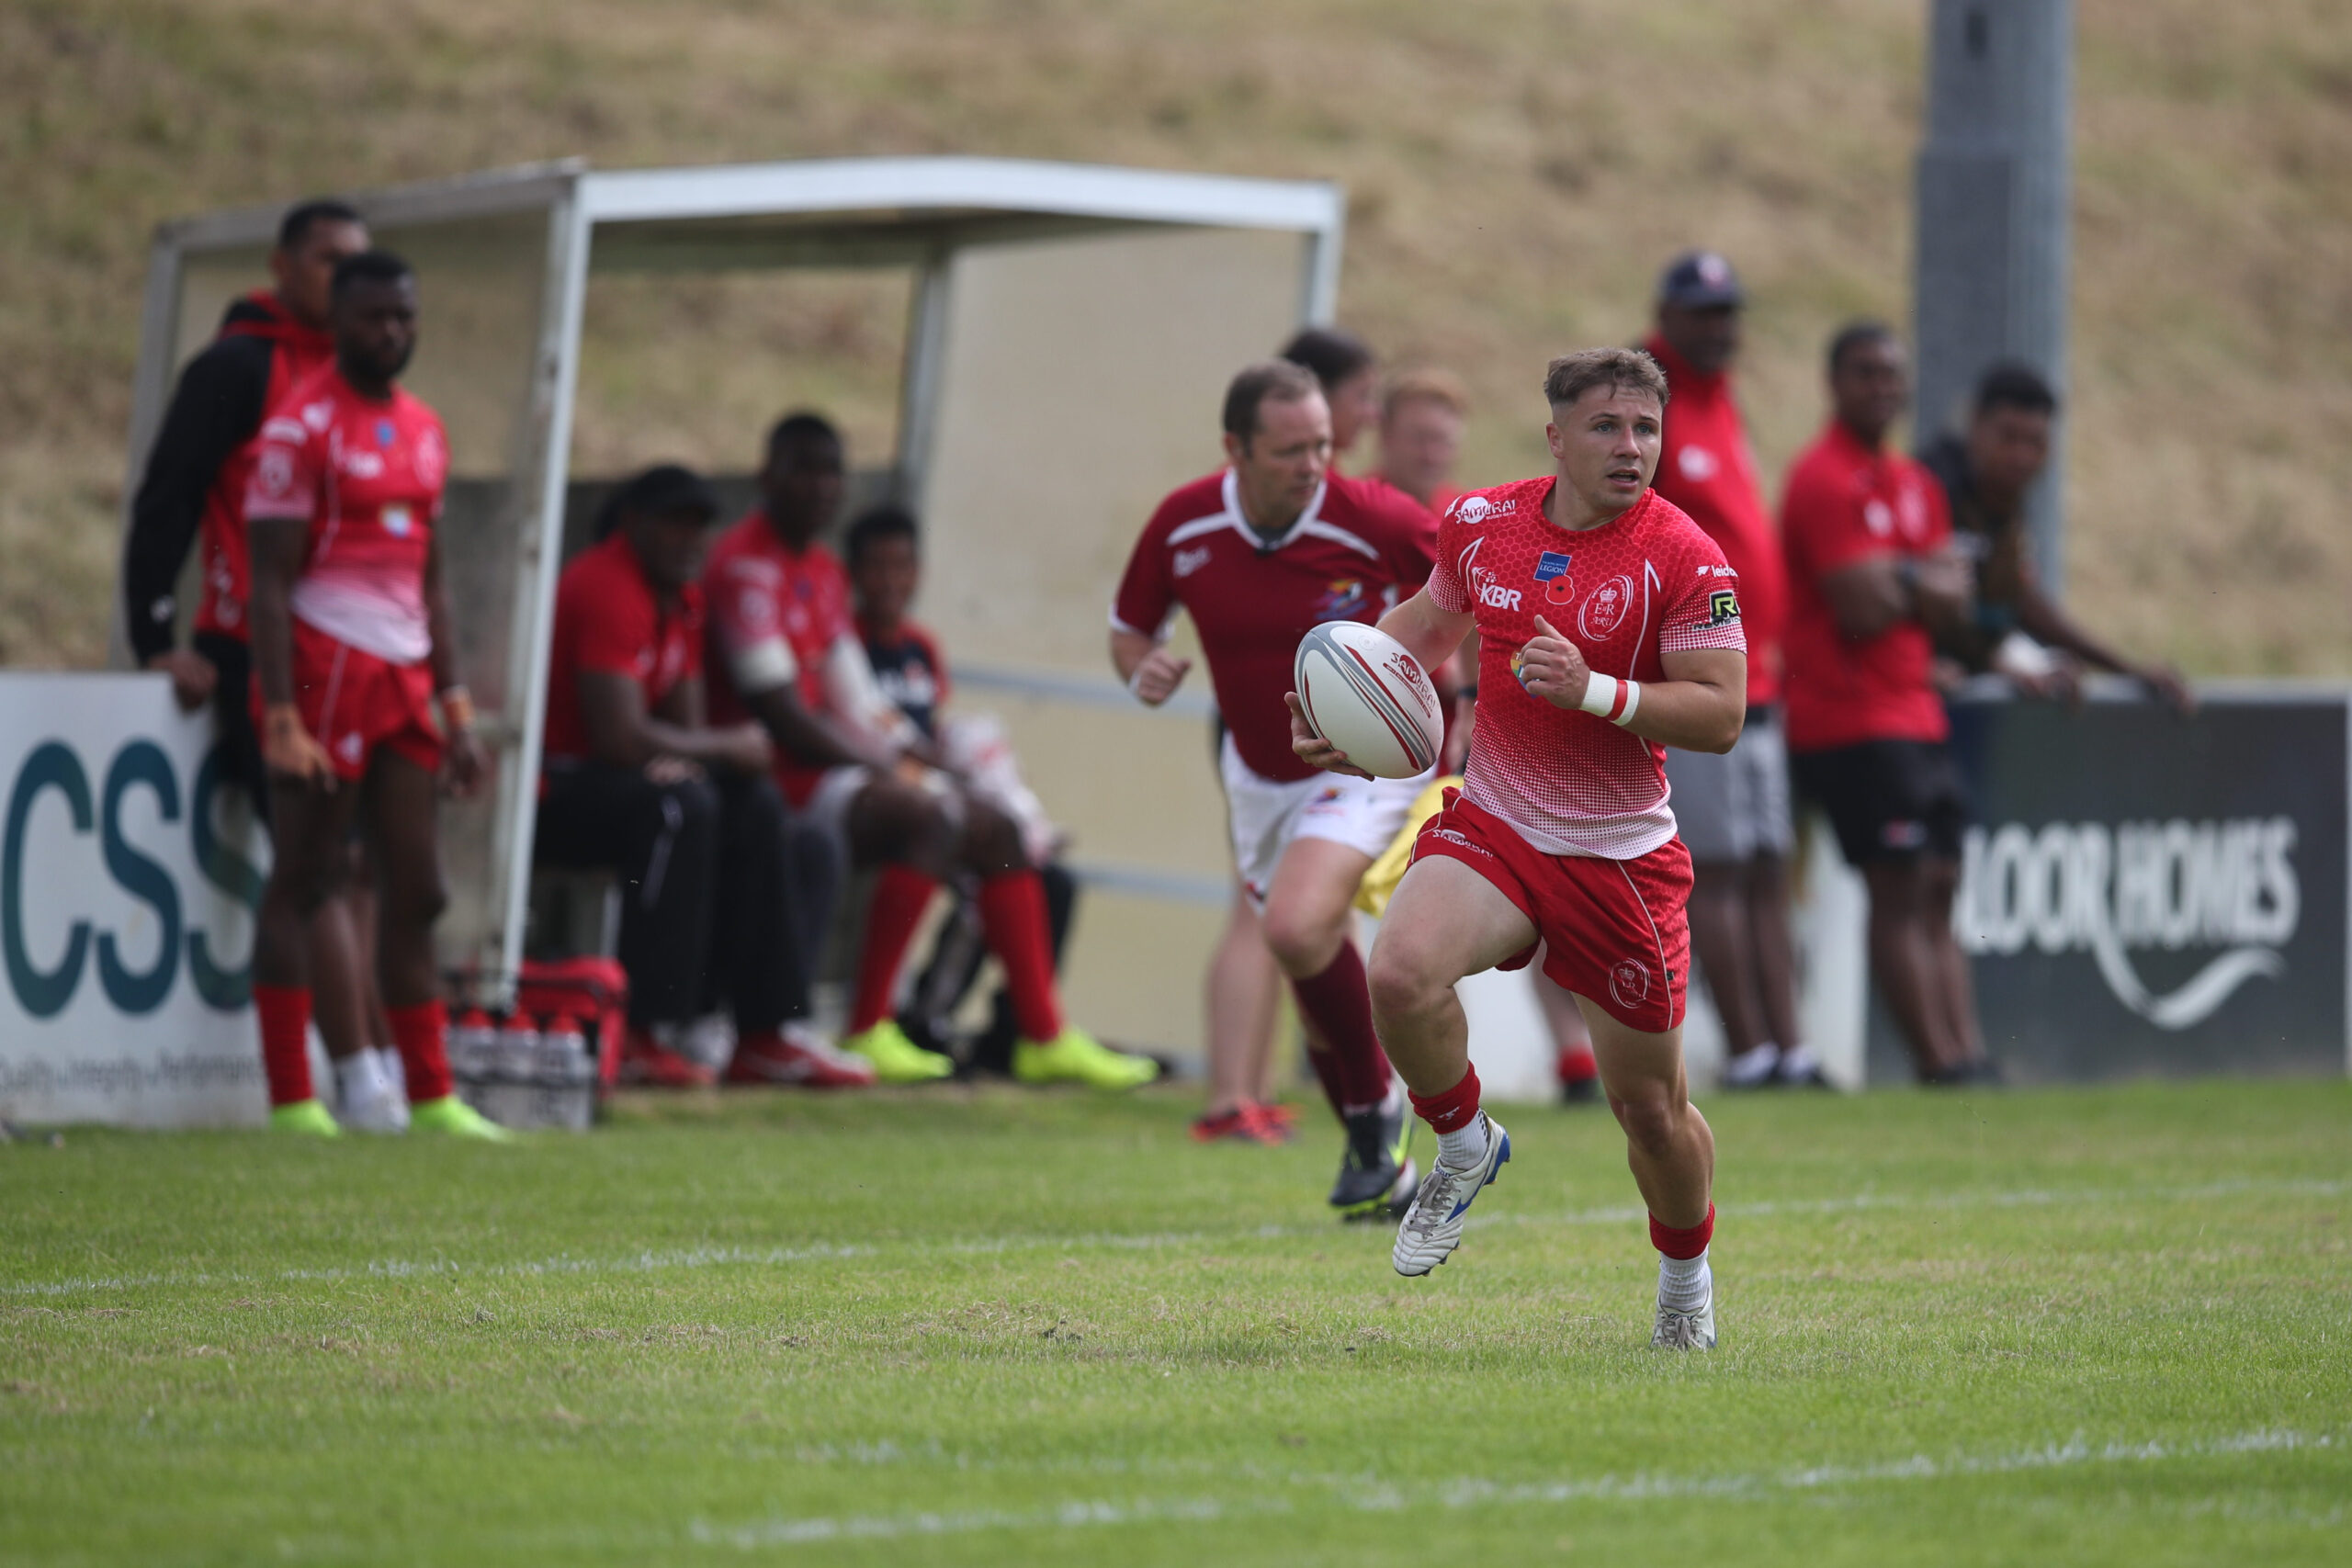 McDonald working off frustrations on the Sevens field